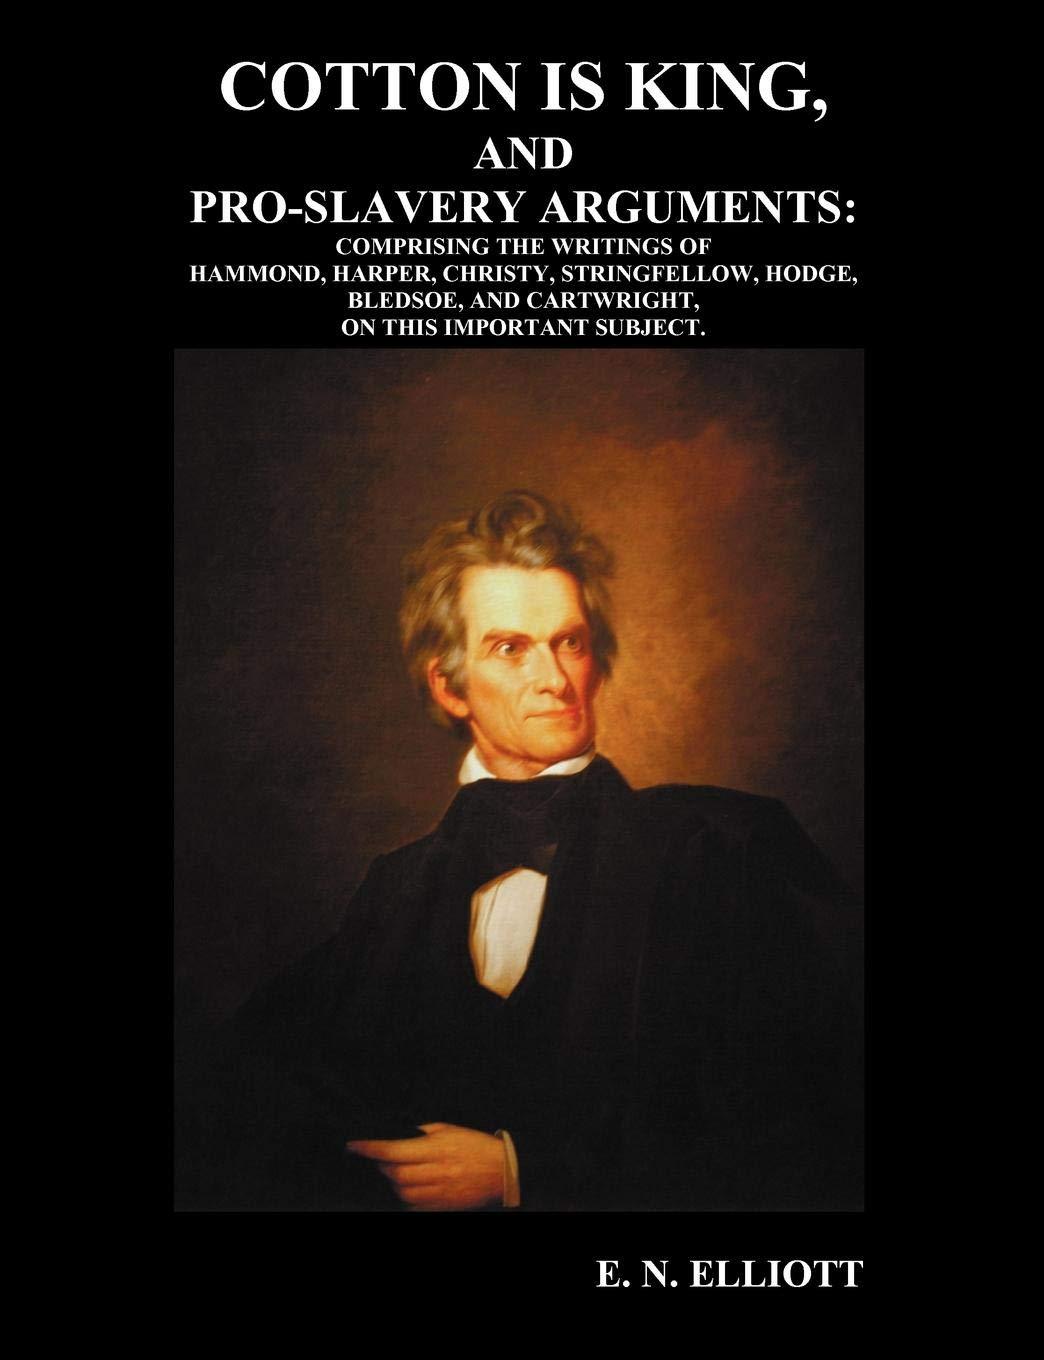 Download Cotton is King, and Pro-Slavery Arguments: Comprising The Writings of Hammond, Harper, Christy, Stringfellow, Hodge, Bledsoe, and Cartwright, on this Important Subject pdf epub